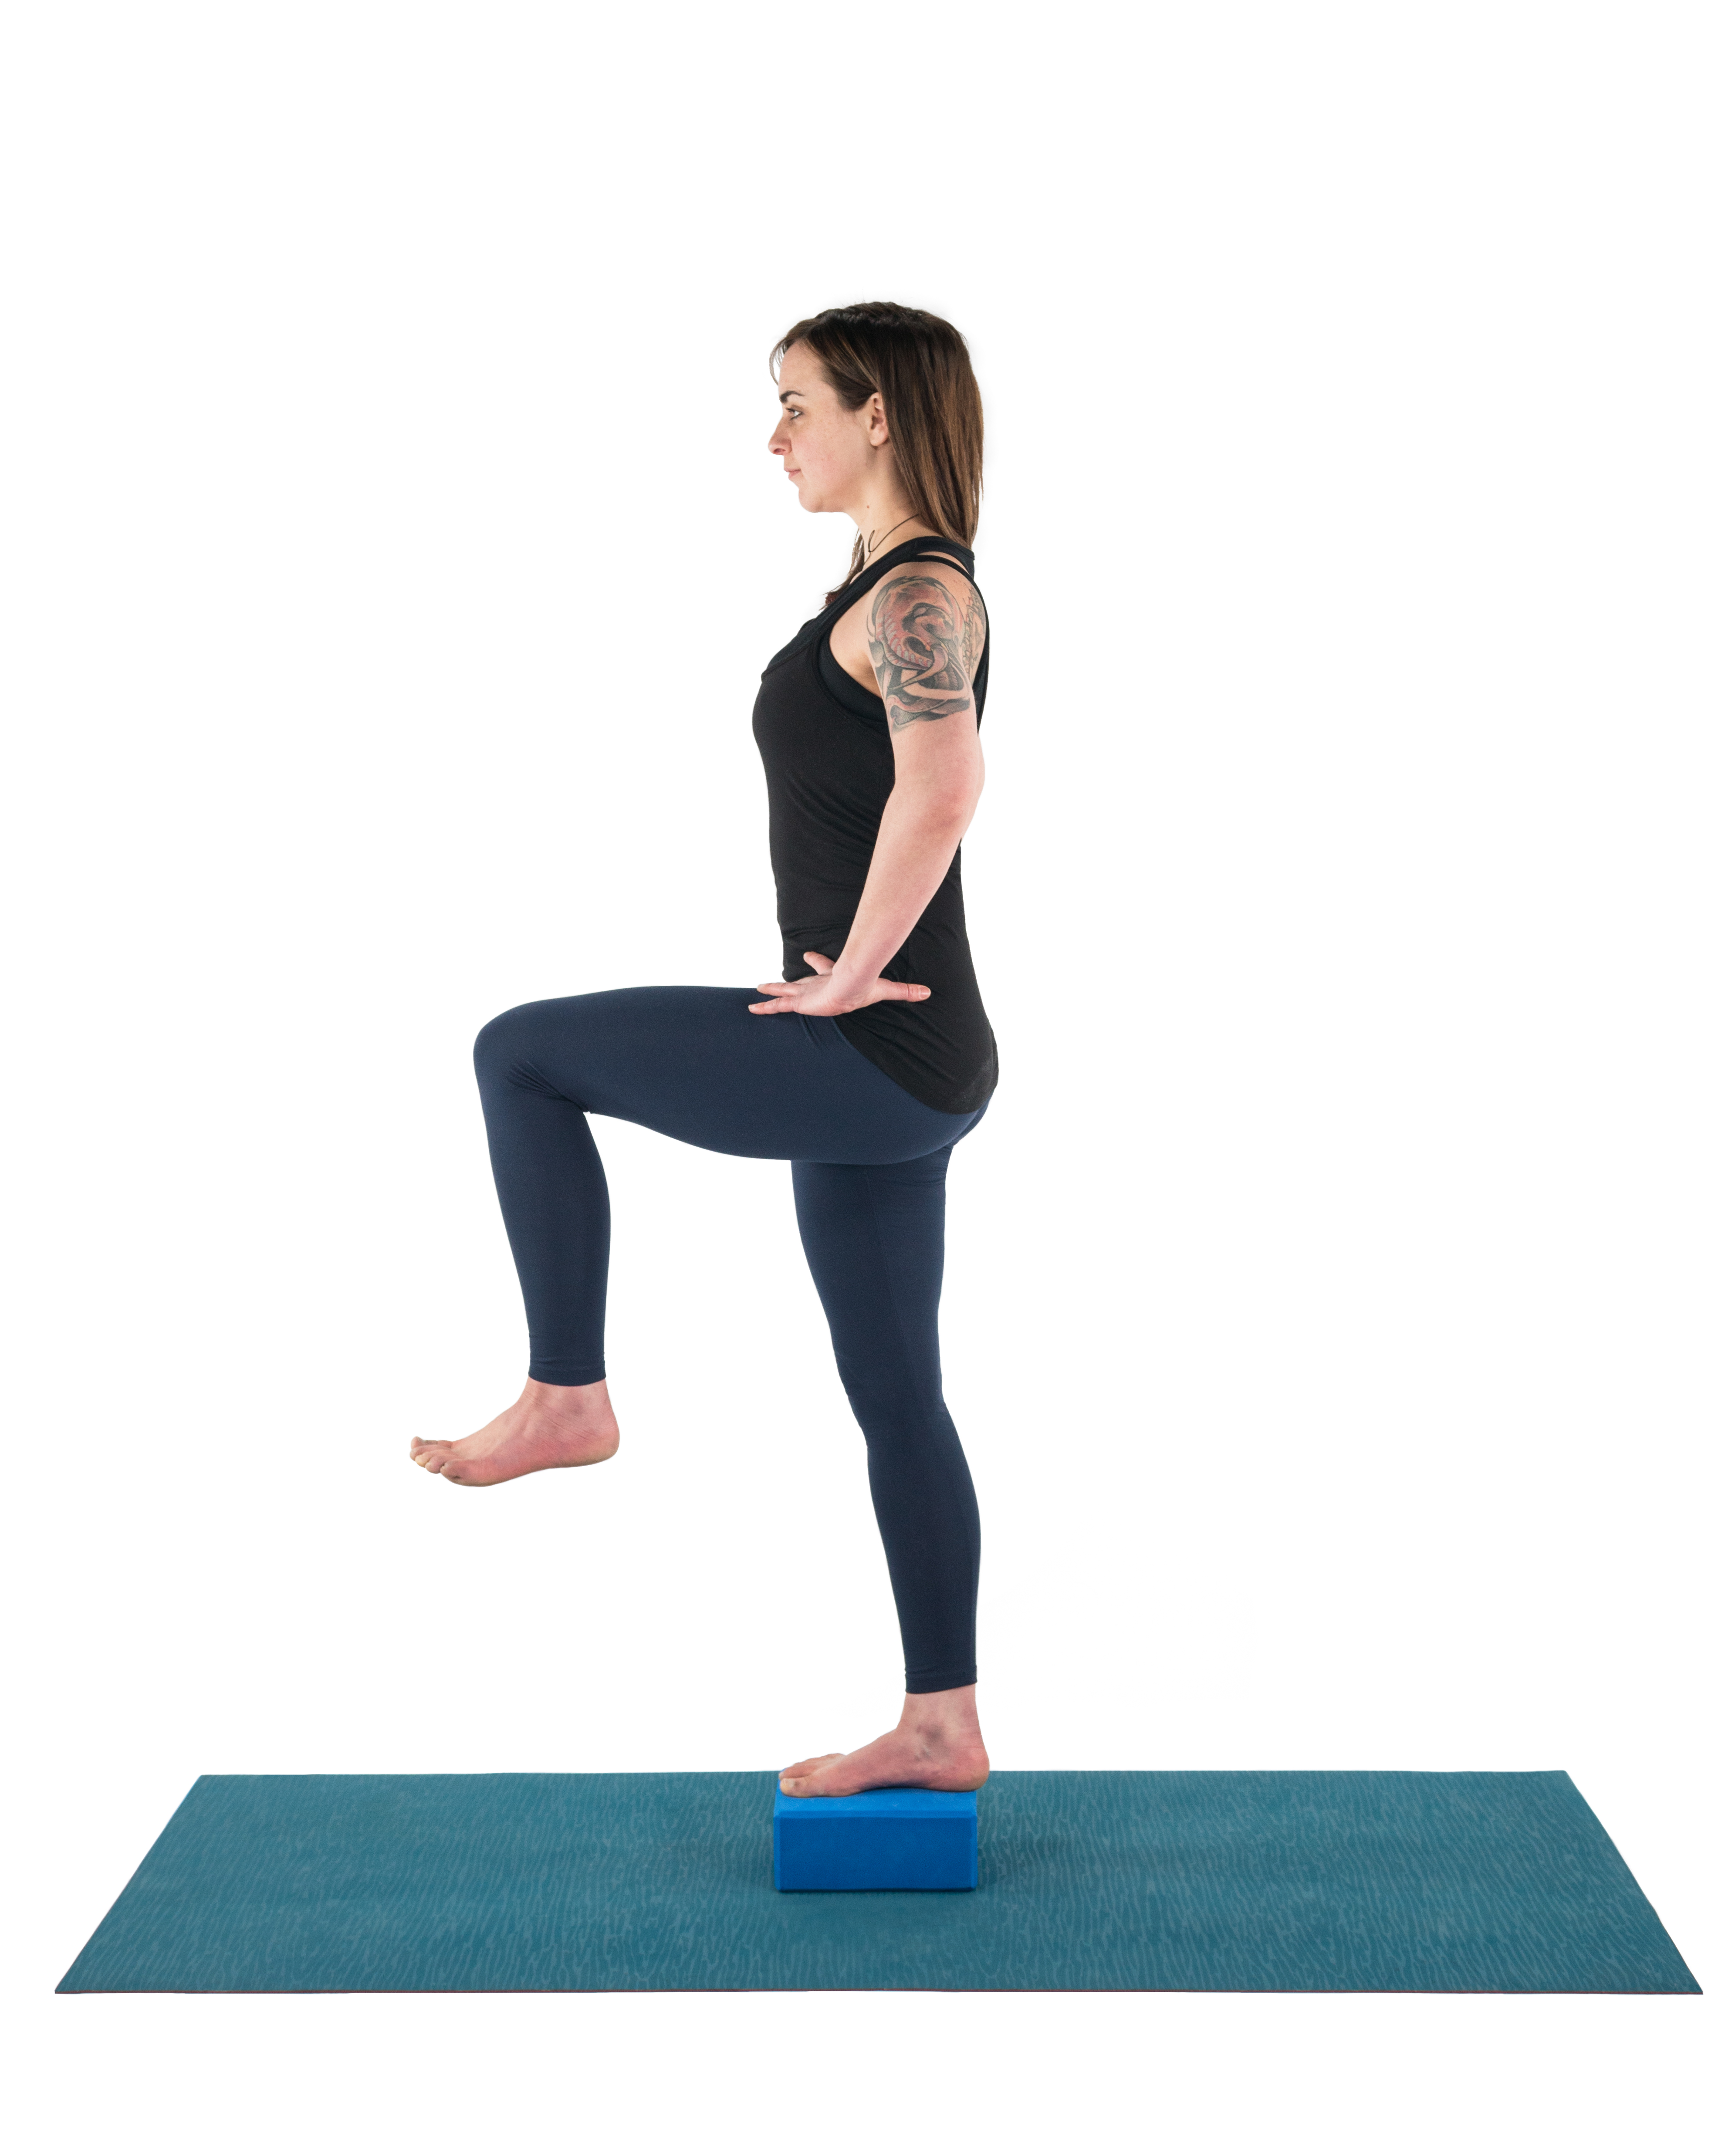 A woman in a balance yoga pose, standing with one foot on a block, to practice foot care and balance.